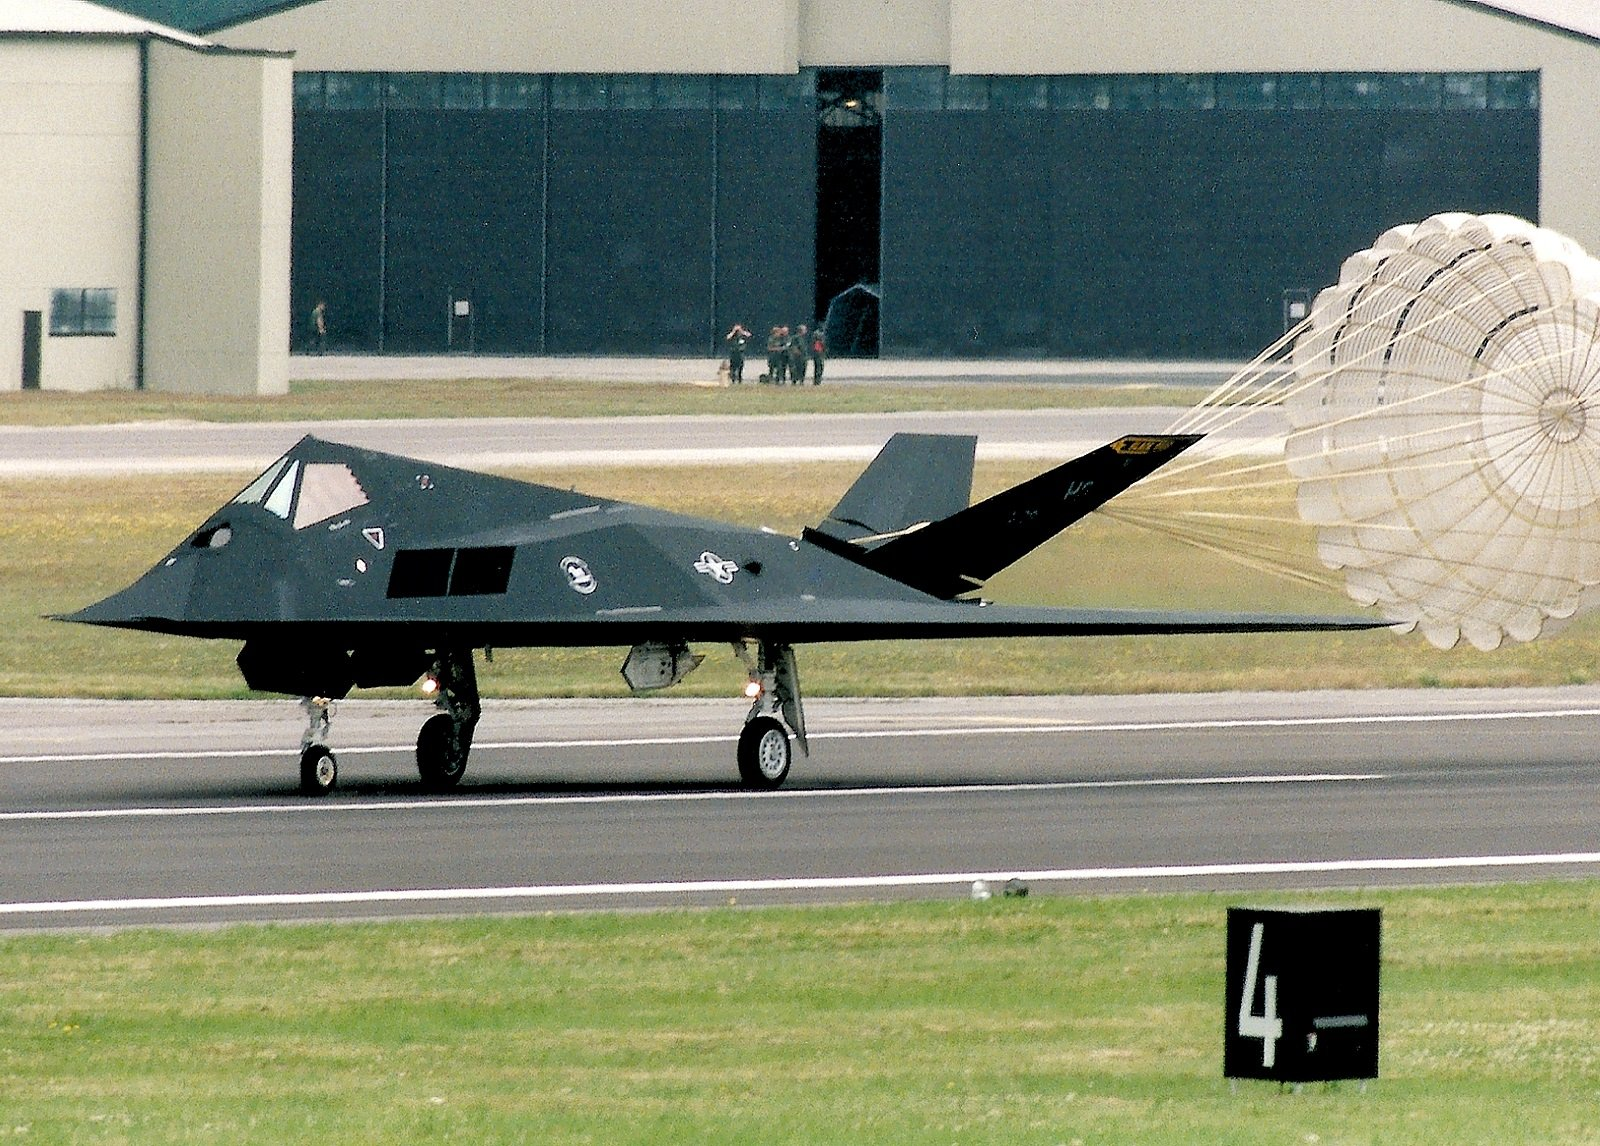 Skunk Works: They Helped Create the F-22, F-35, U-2 Spyplane and F-117 Stealth Fighter